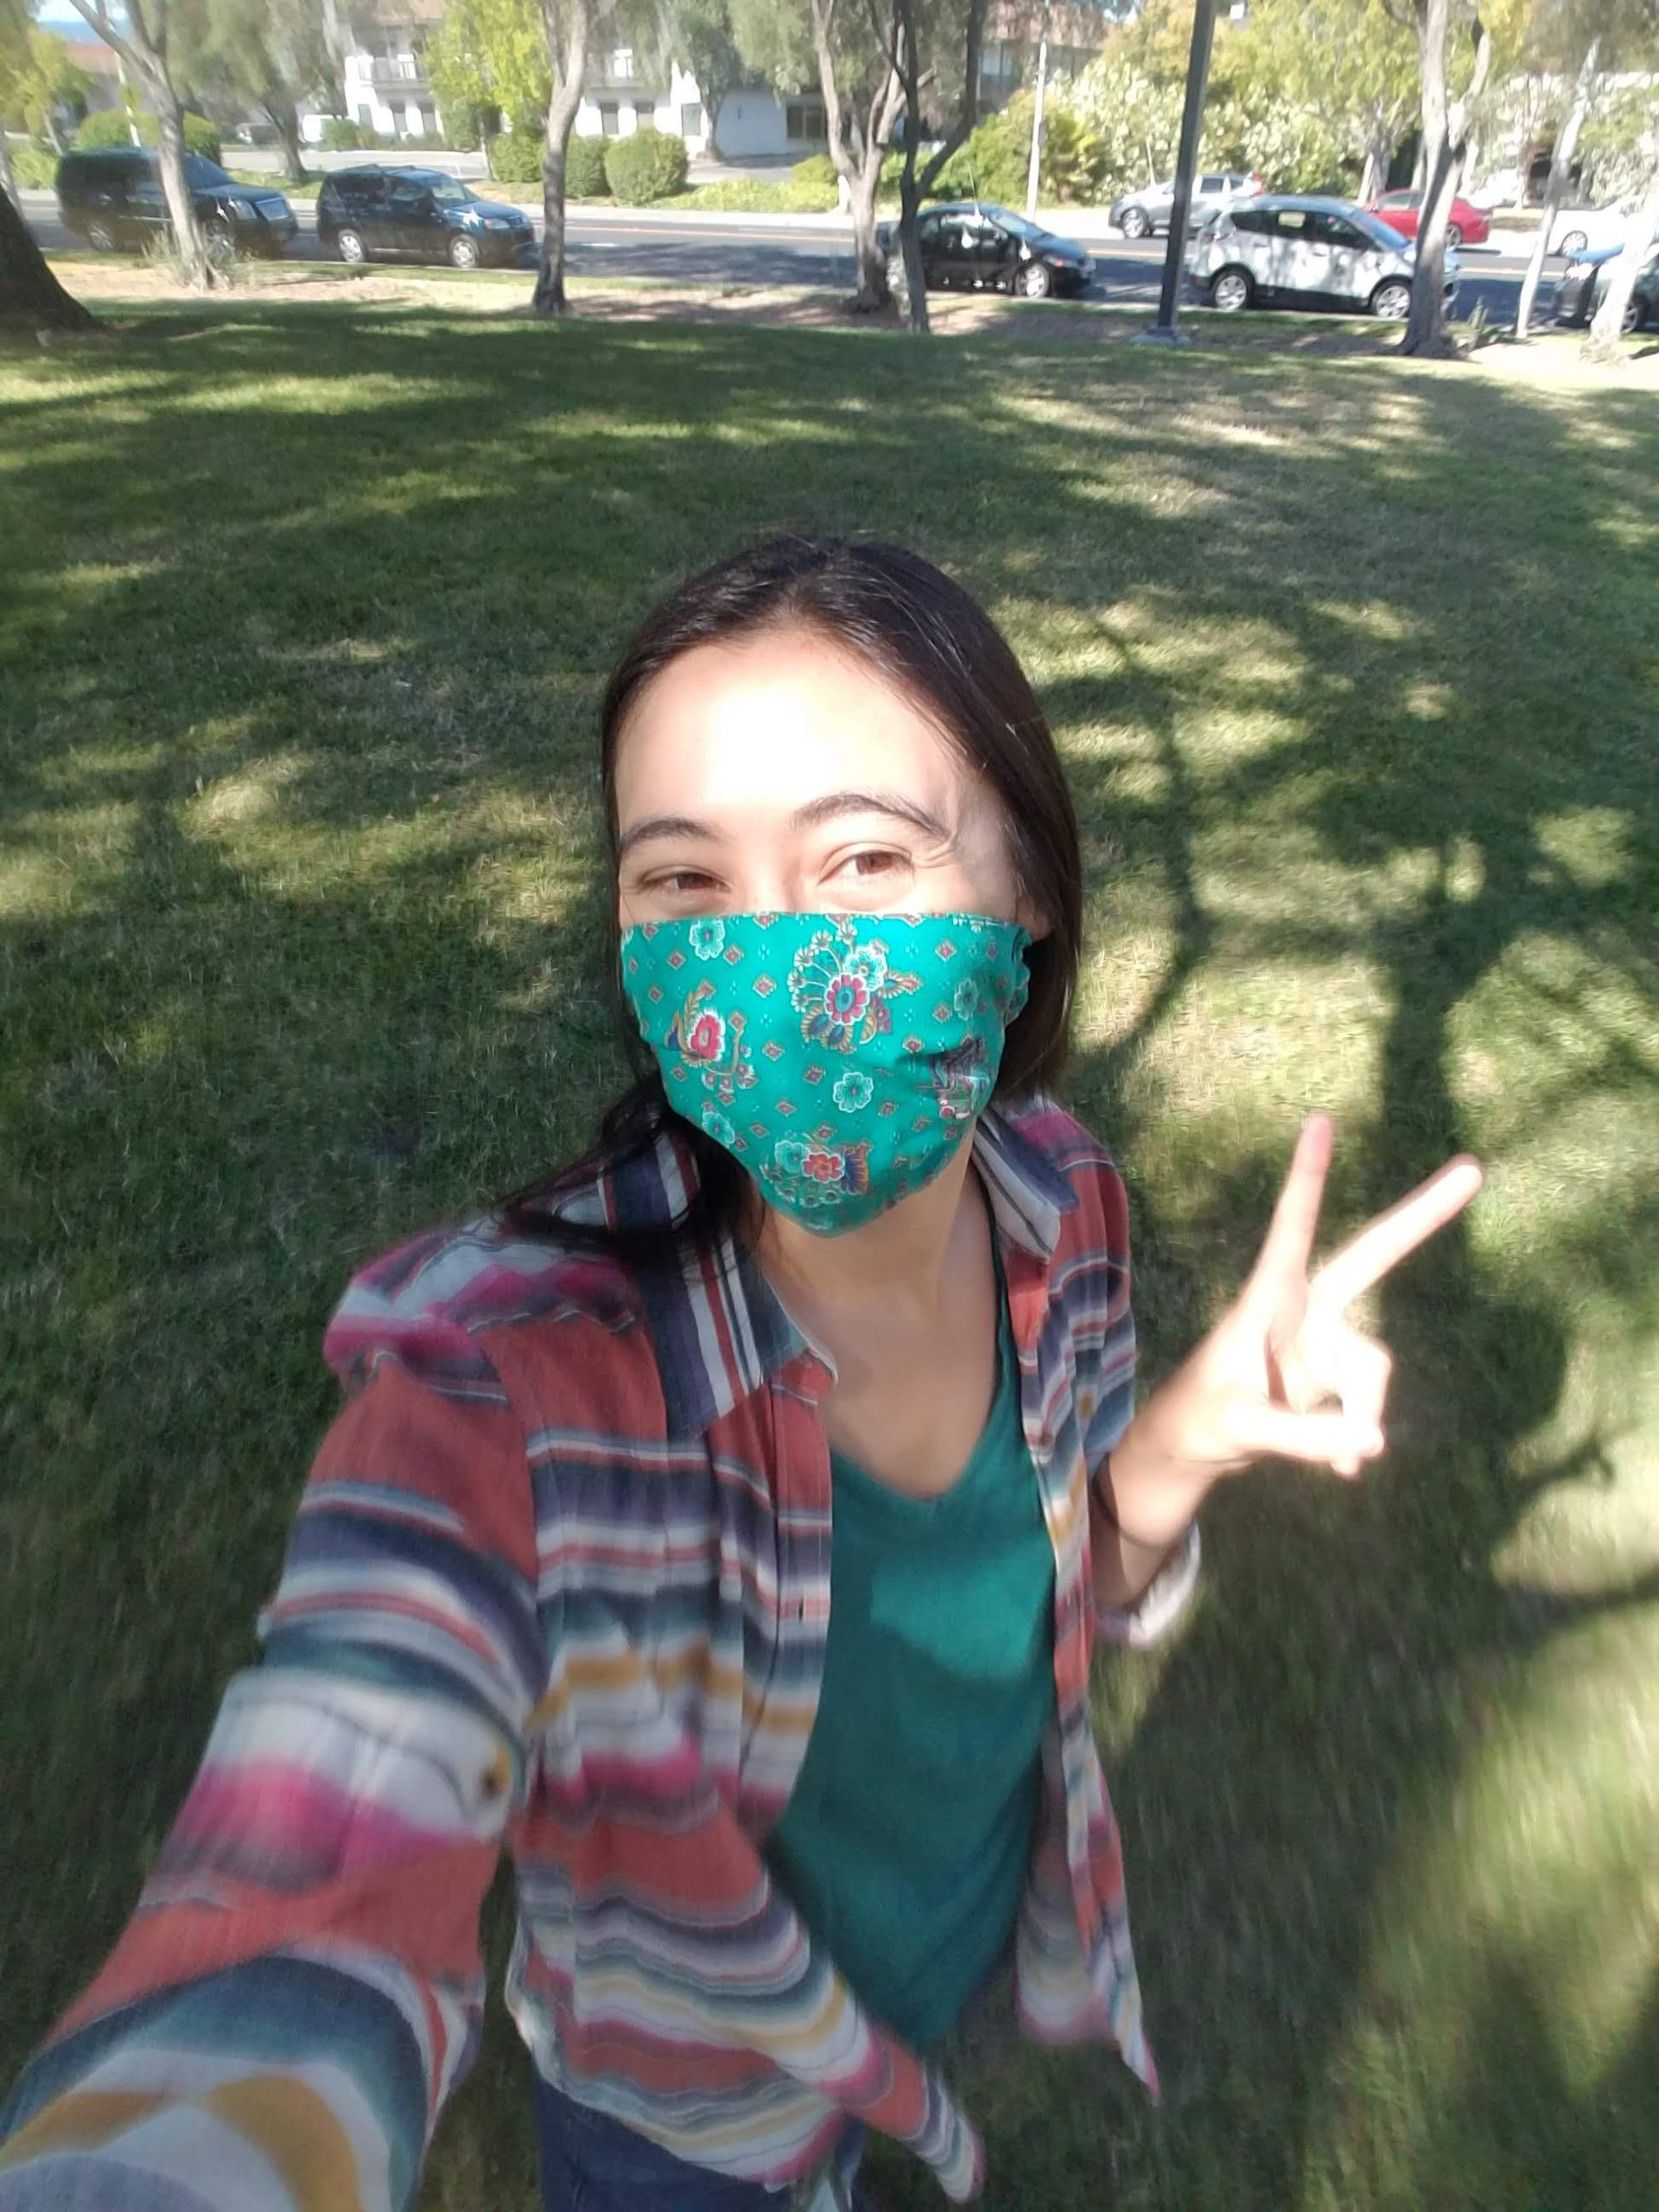 Woman in mask takes selfie in a yard while giving peace sign